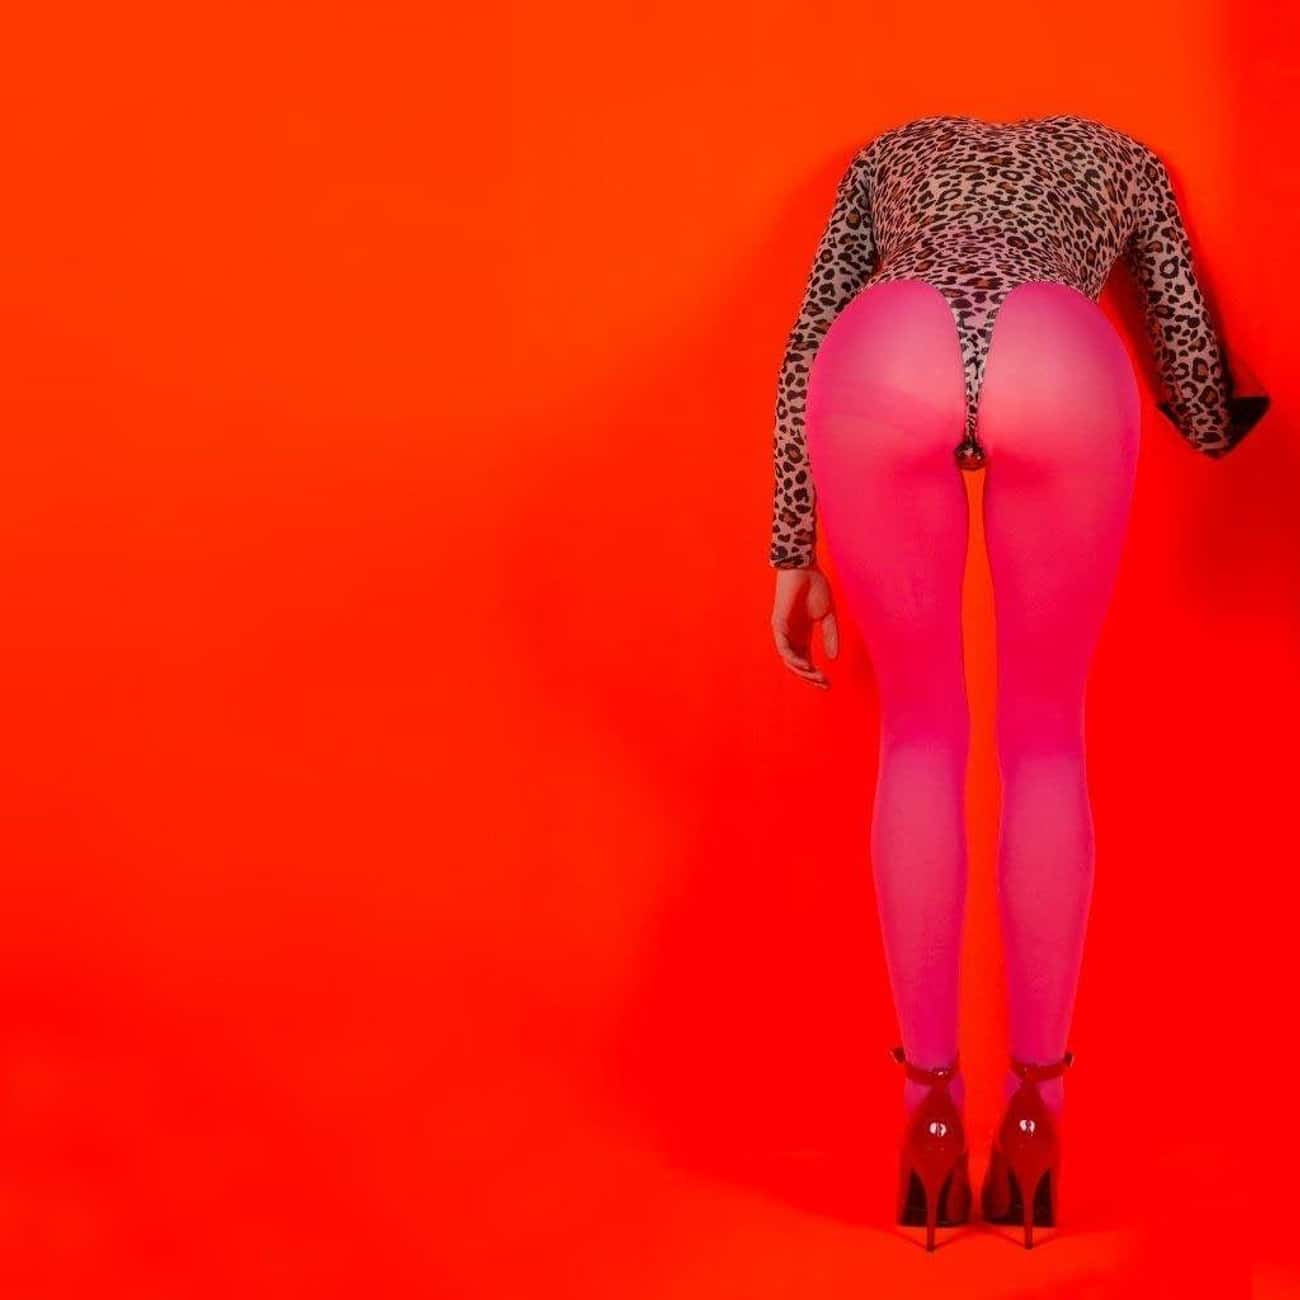 Masseduction is listed (or ranked) 4 on the list The Best St. Vincent Albums, Ranked